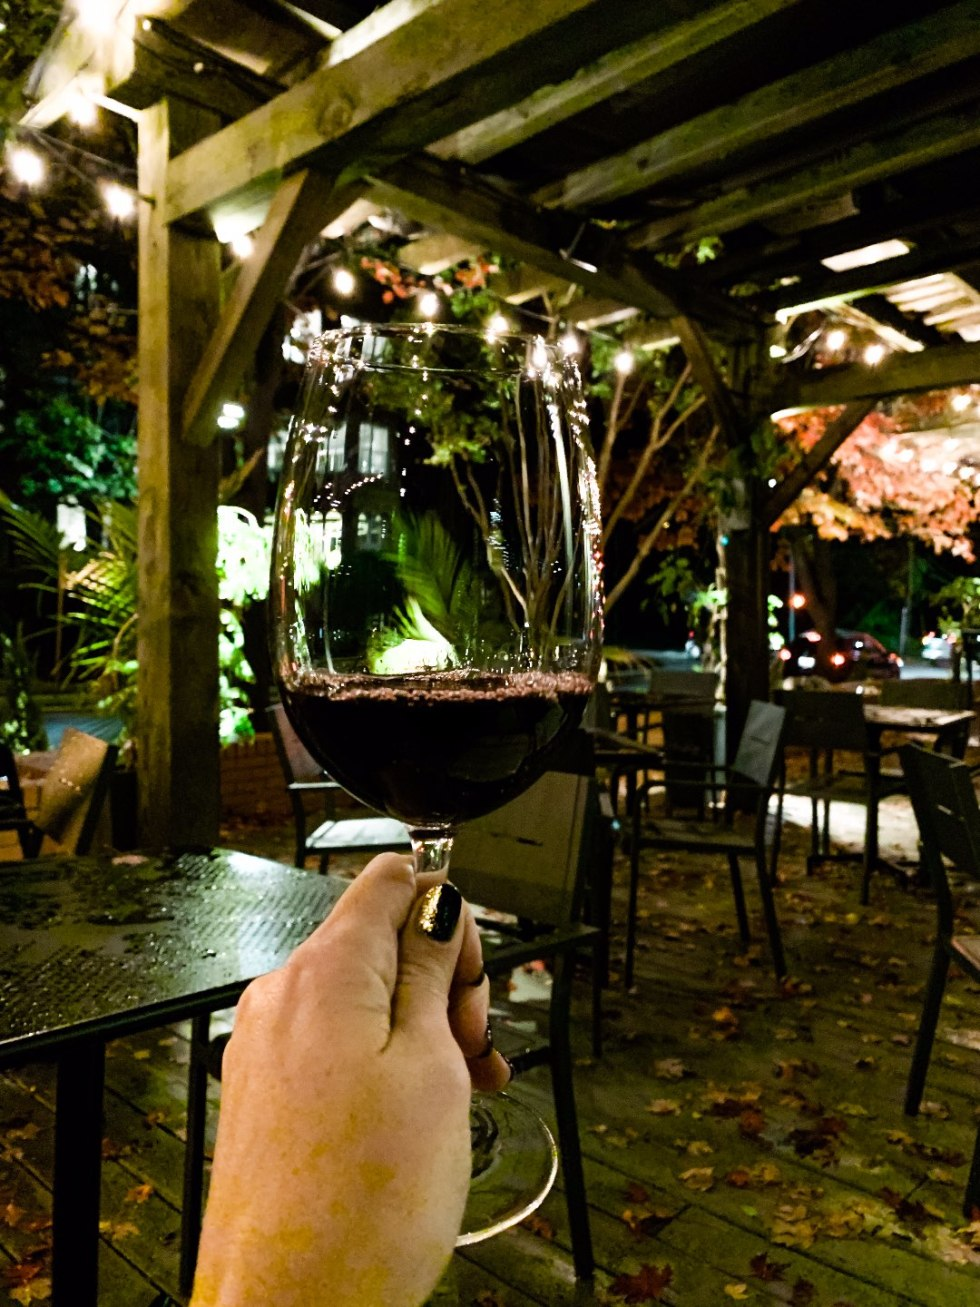 The 20 North Carolina Restaurants I Can't Wait to Visit after Quarantine - I'm Fixin' To - @mbg0112 | Best North Carolina Restaurants by popular N.C. blog, I'm Fixin' To: image of a woman holding a glass of wine at Wye Hill restaurant.